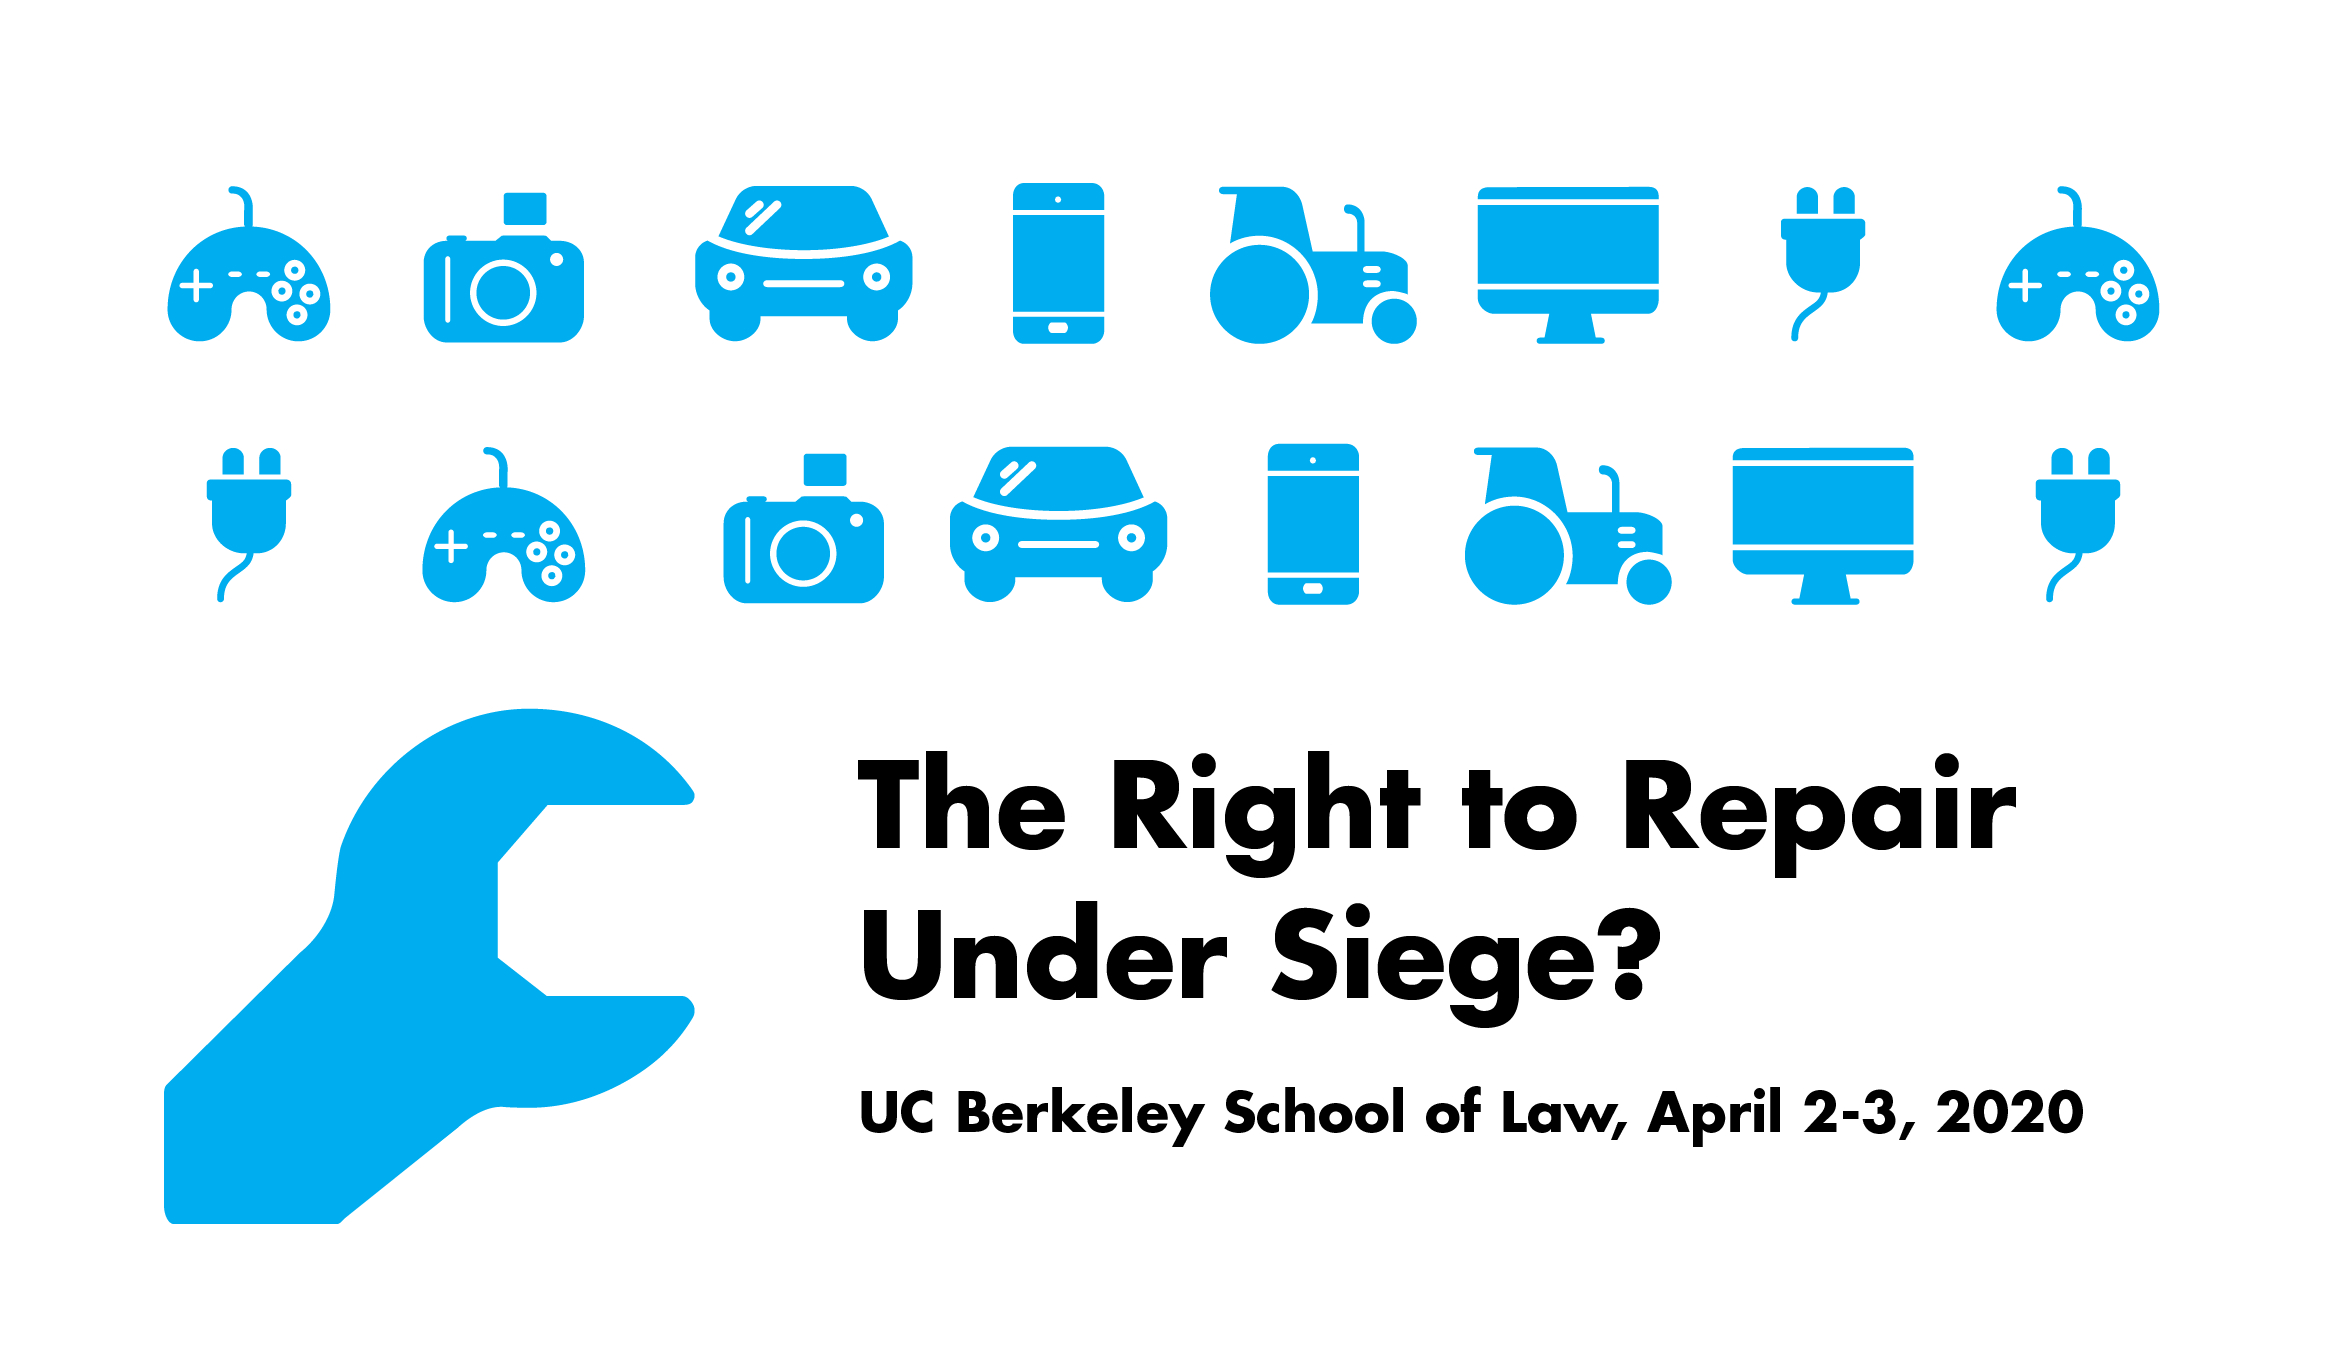 Right To Repair Under Siege? | Berkeley Law throughout Berkeley Academic Calendar 2020